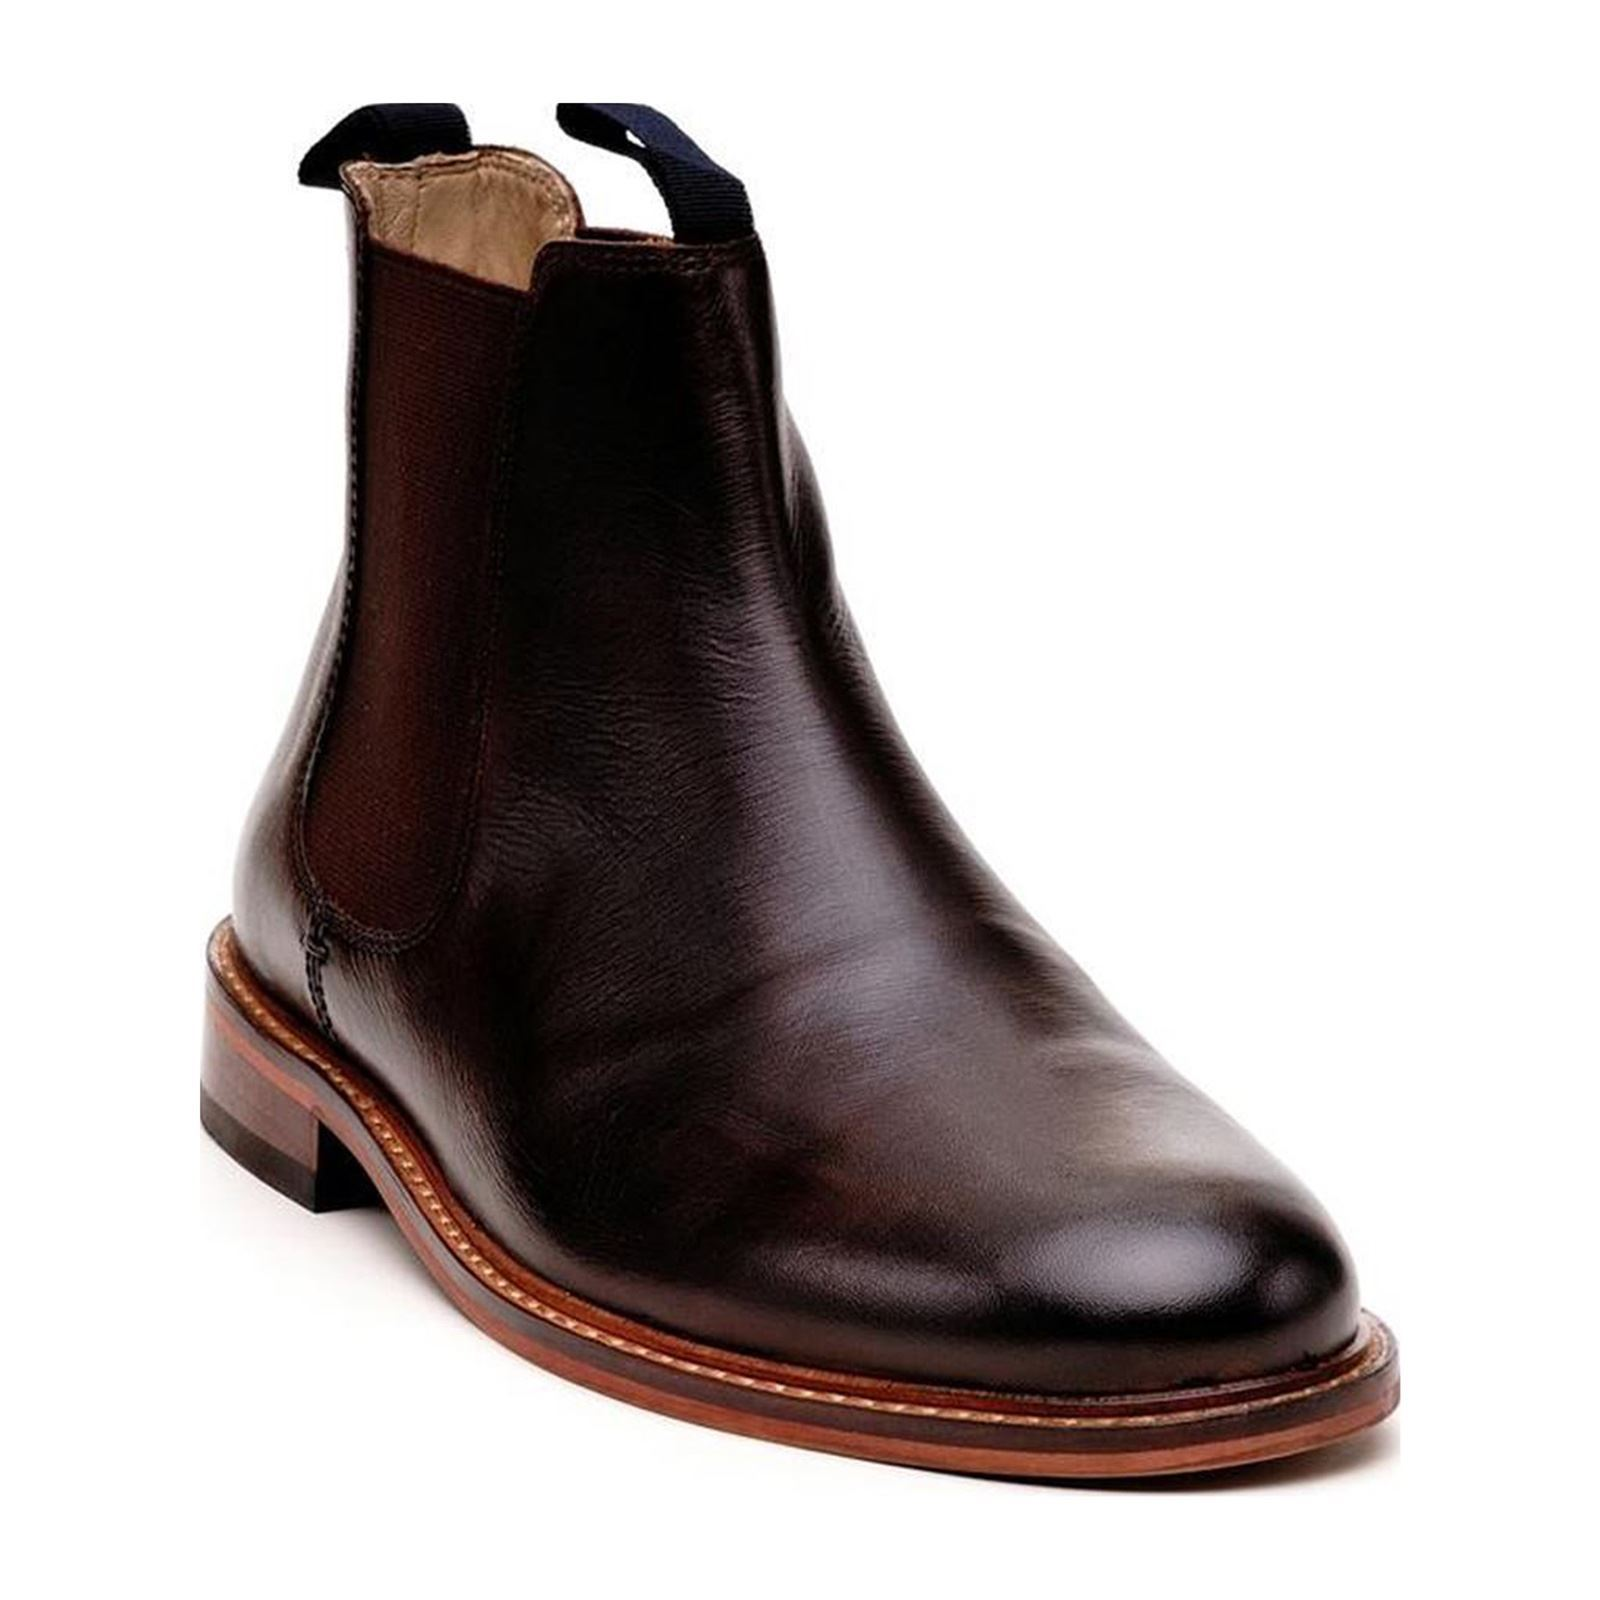 Dillinger Albert - Bottines en cuir - marron